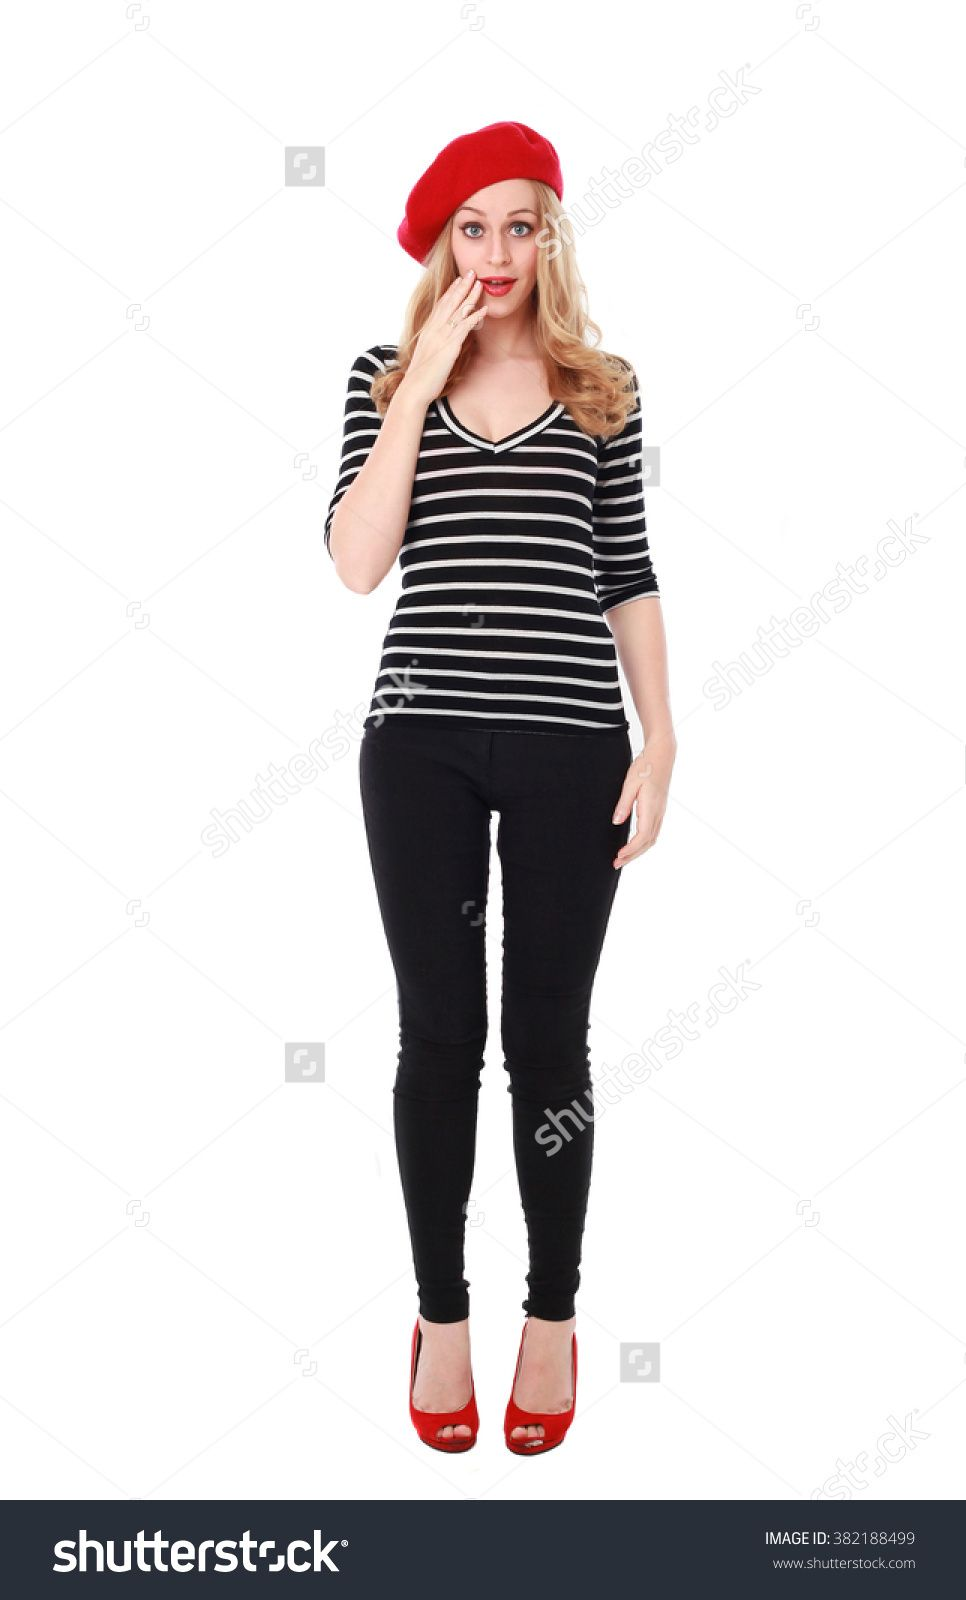 Blonde Woman Wearing Stereotypical French Clothing. Standing Pose ...